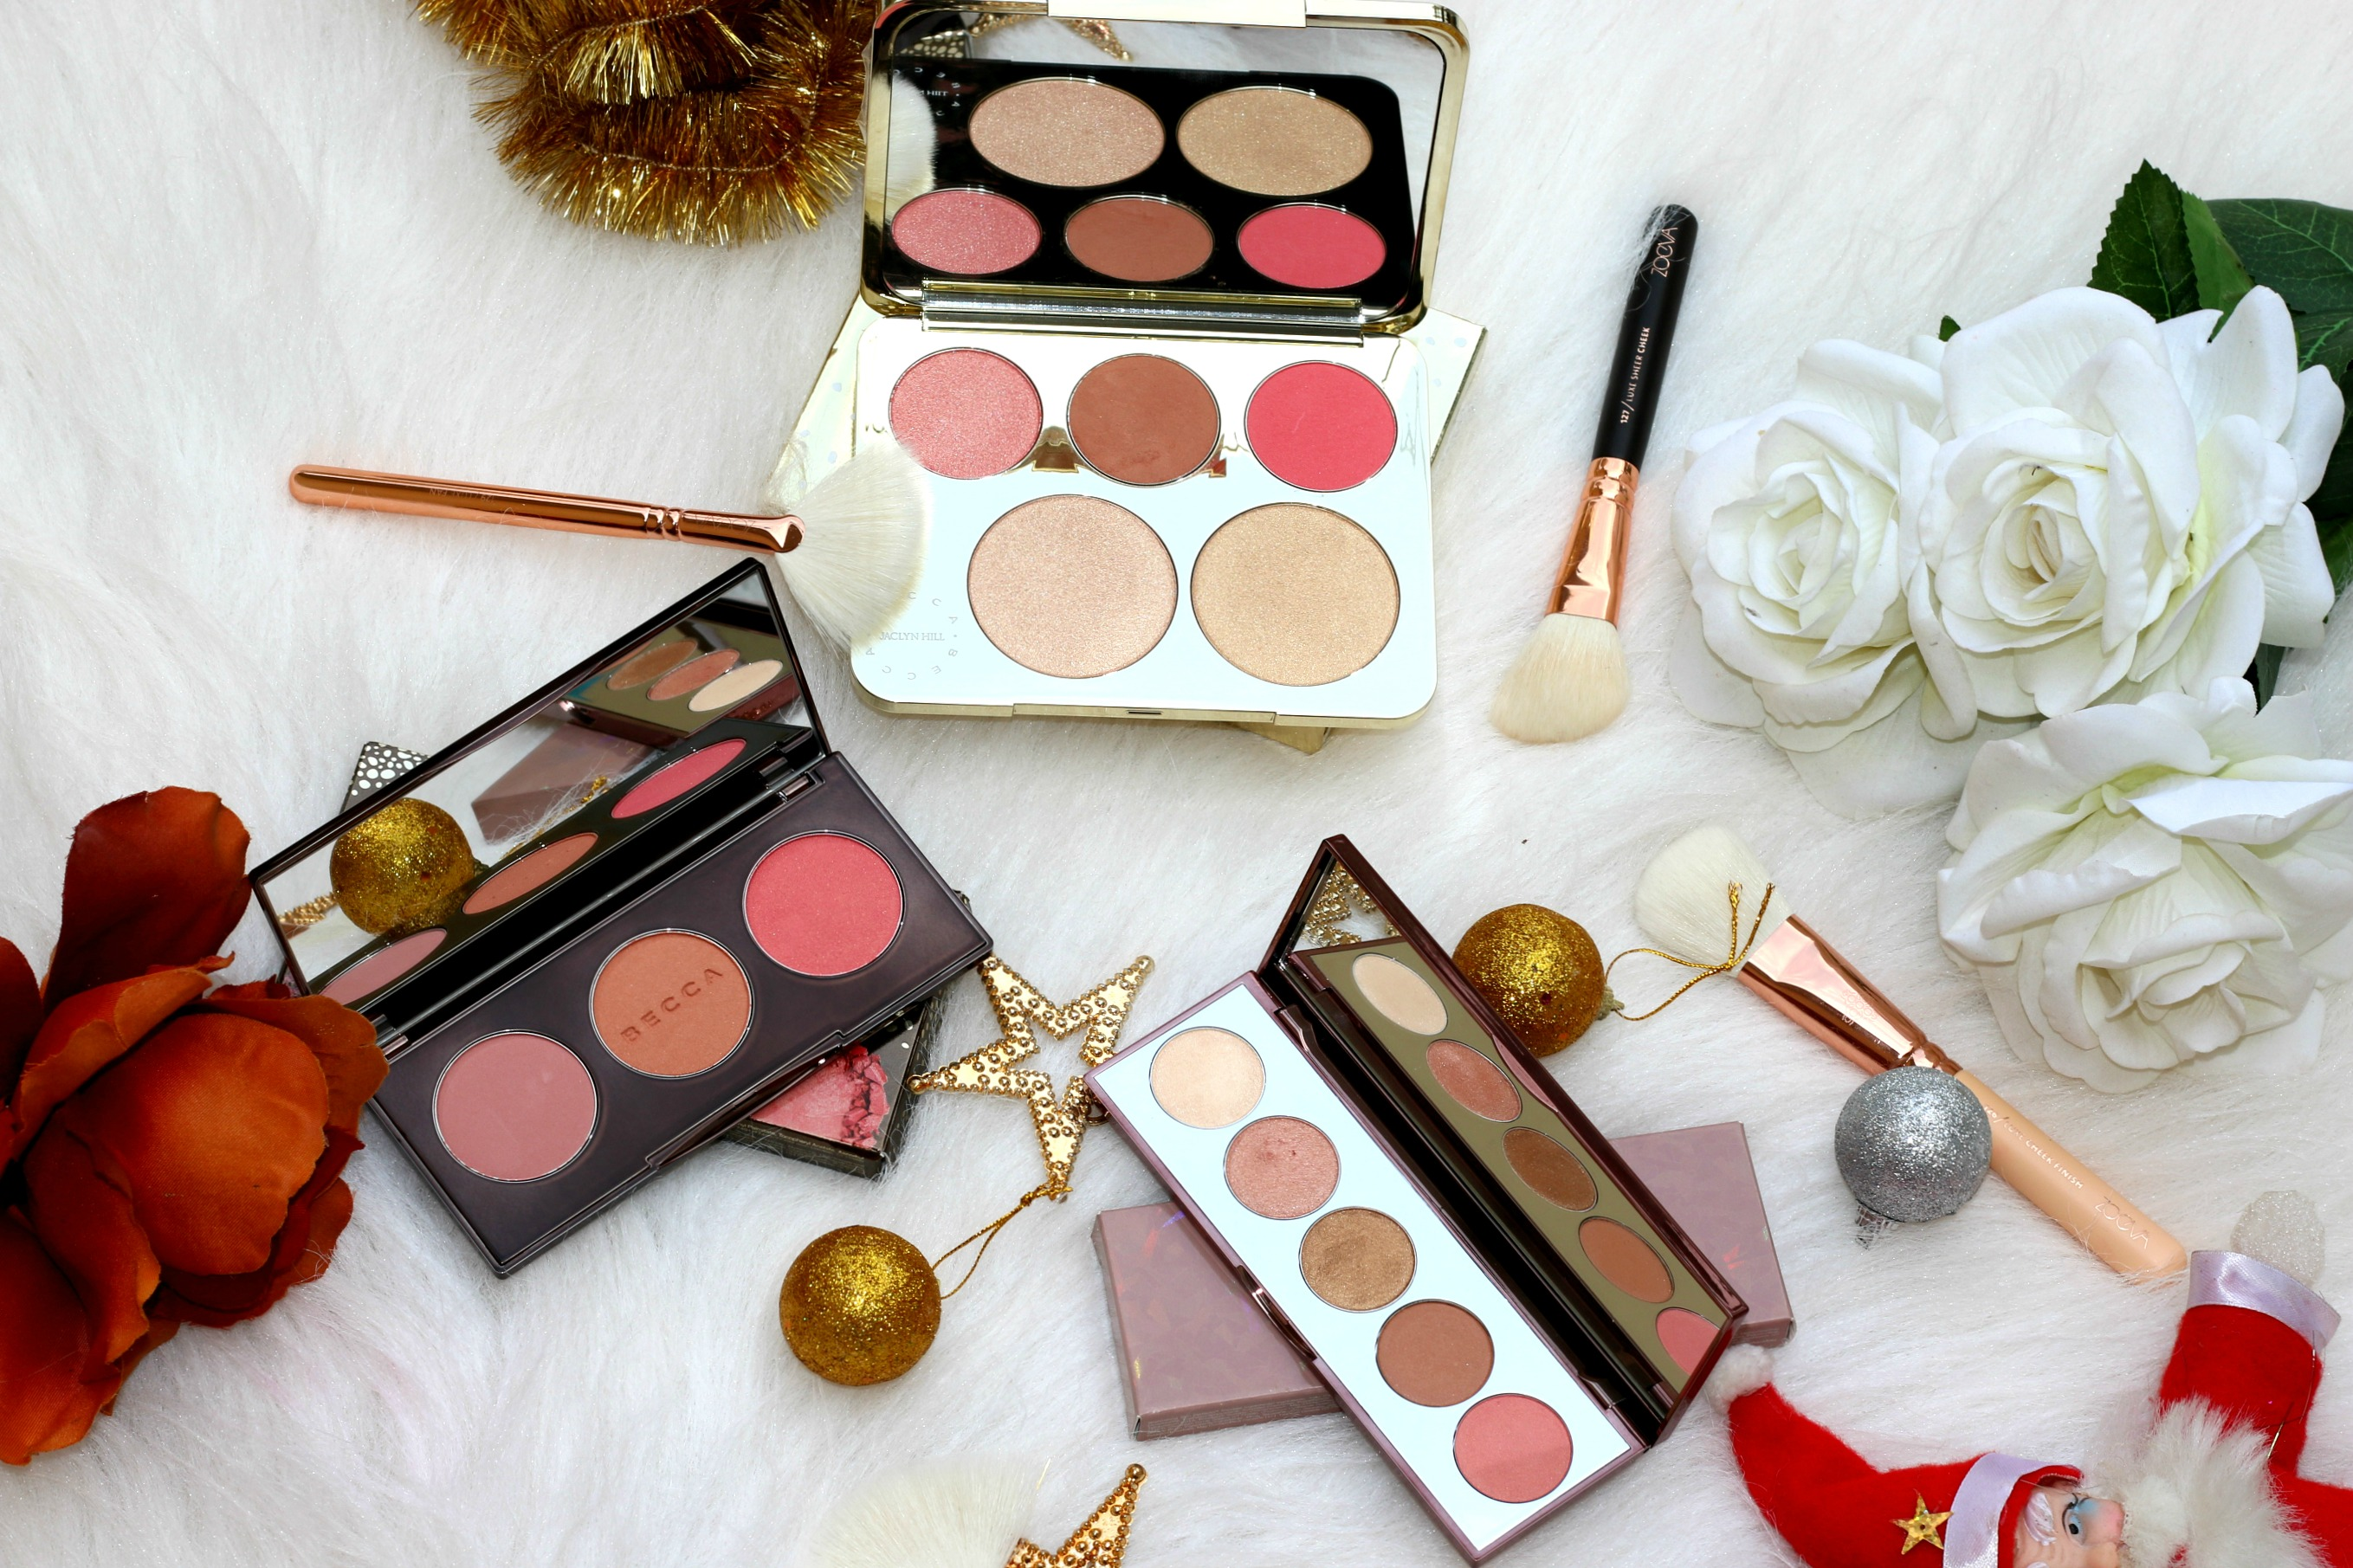 Becca Cosmetics Edit – Featuring Blushed With Light Palette, After Glow Palette & Jaclyn Hill Champagne Collection Face Palette